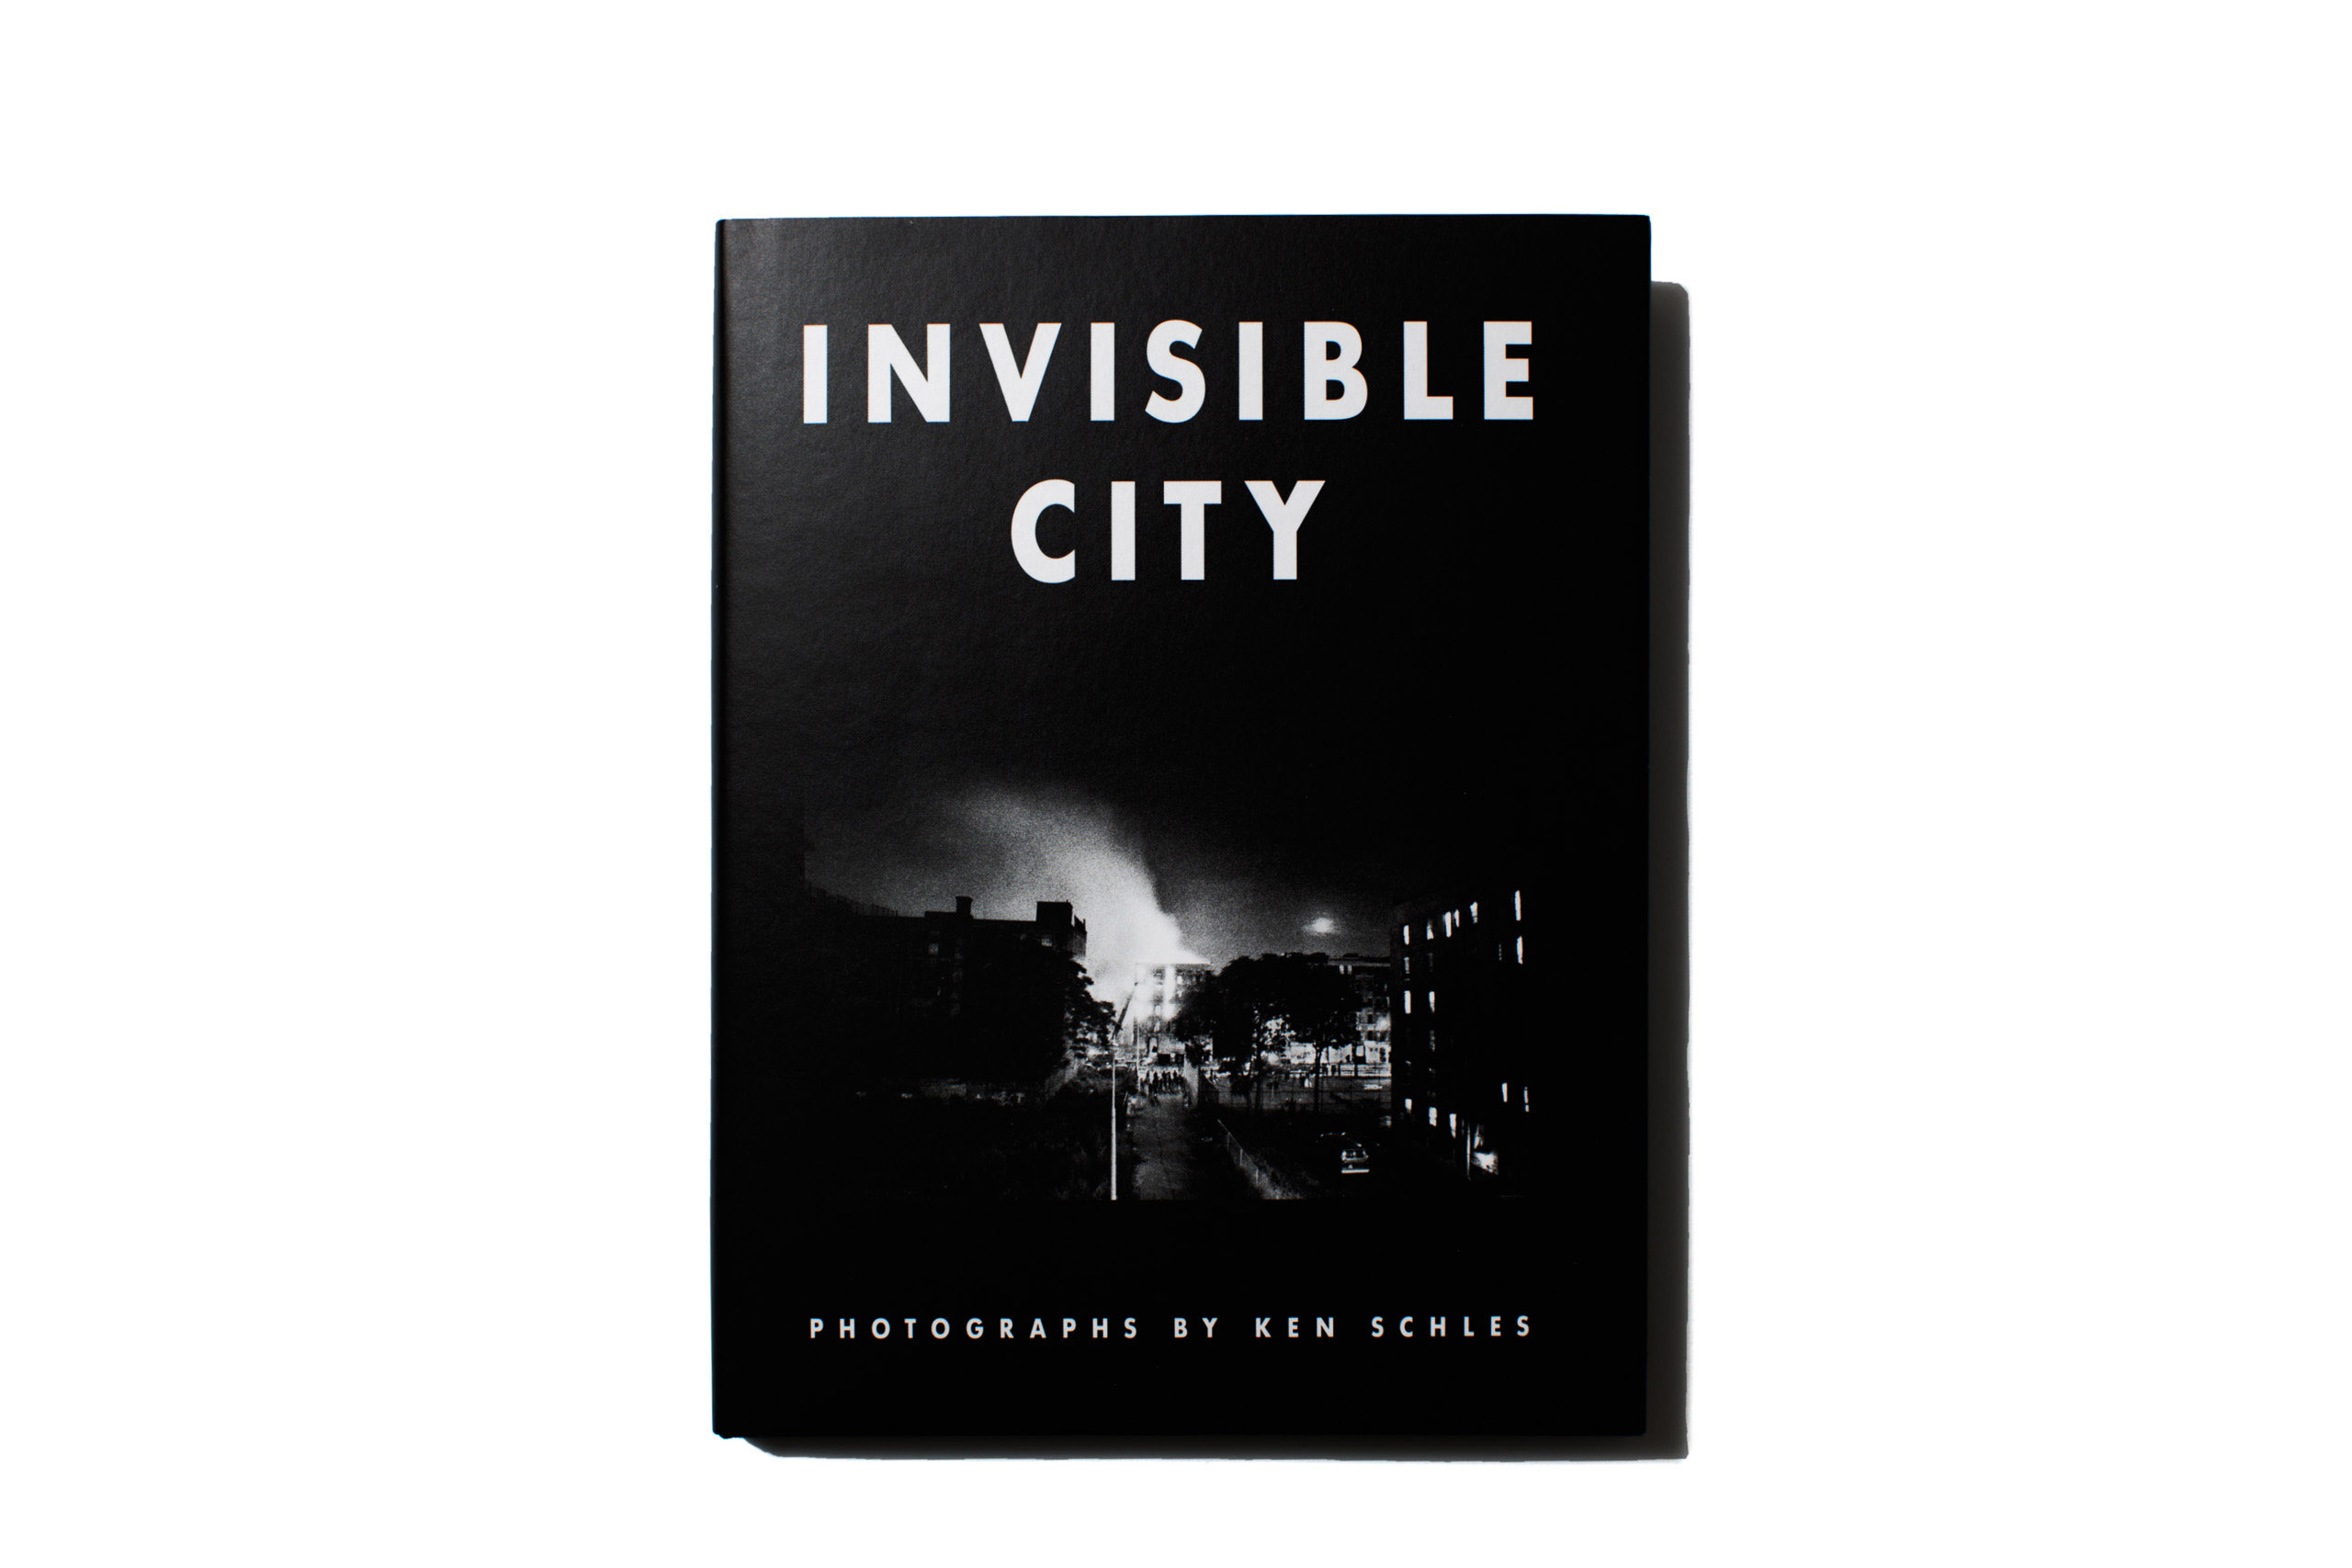 Invisible City                                by                               Ken Schles,                                published by                               Steidl,                               selected by Michelle Molloy, International Photo Editor, TIME.